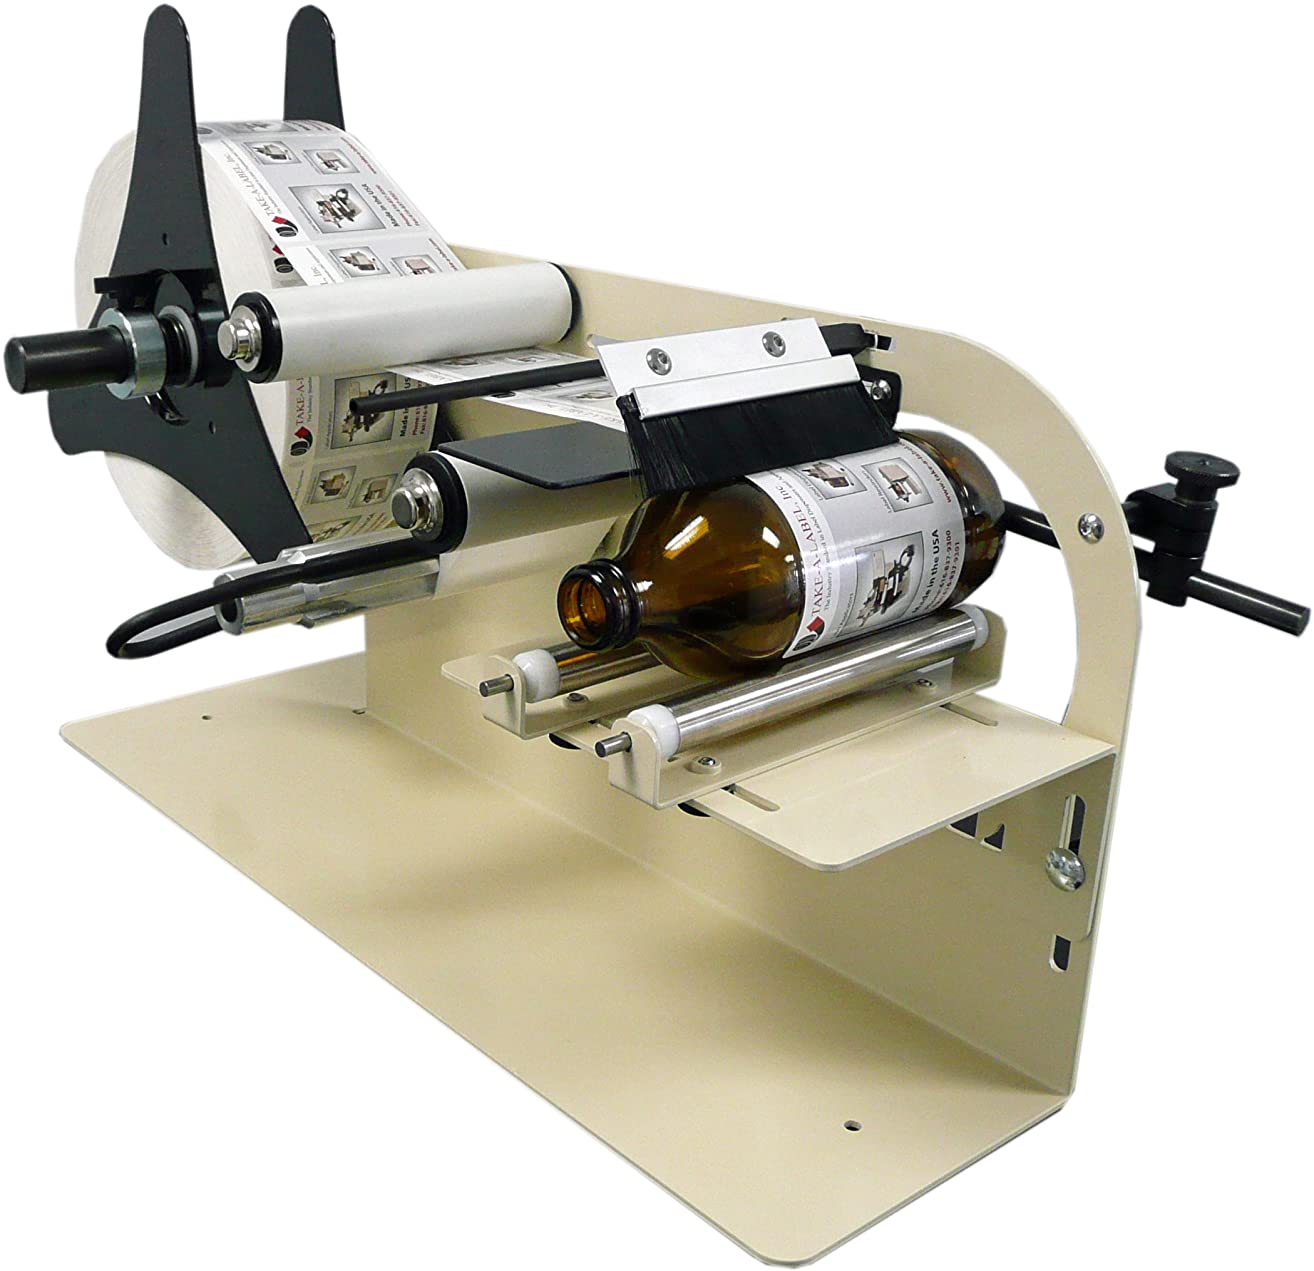 Take-a-Label 11000 TAL-1100MR Manual Round Product Label Applicator